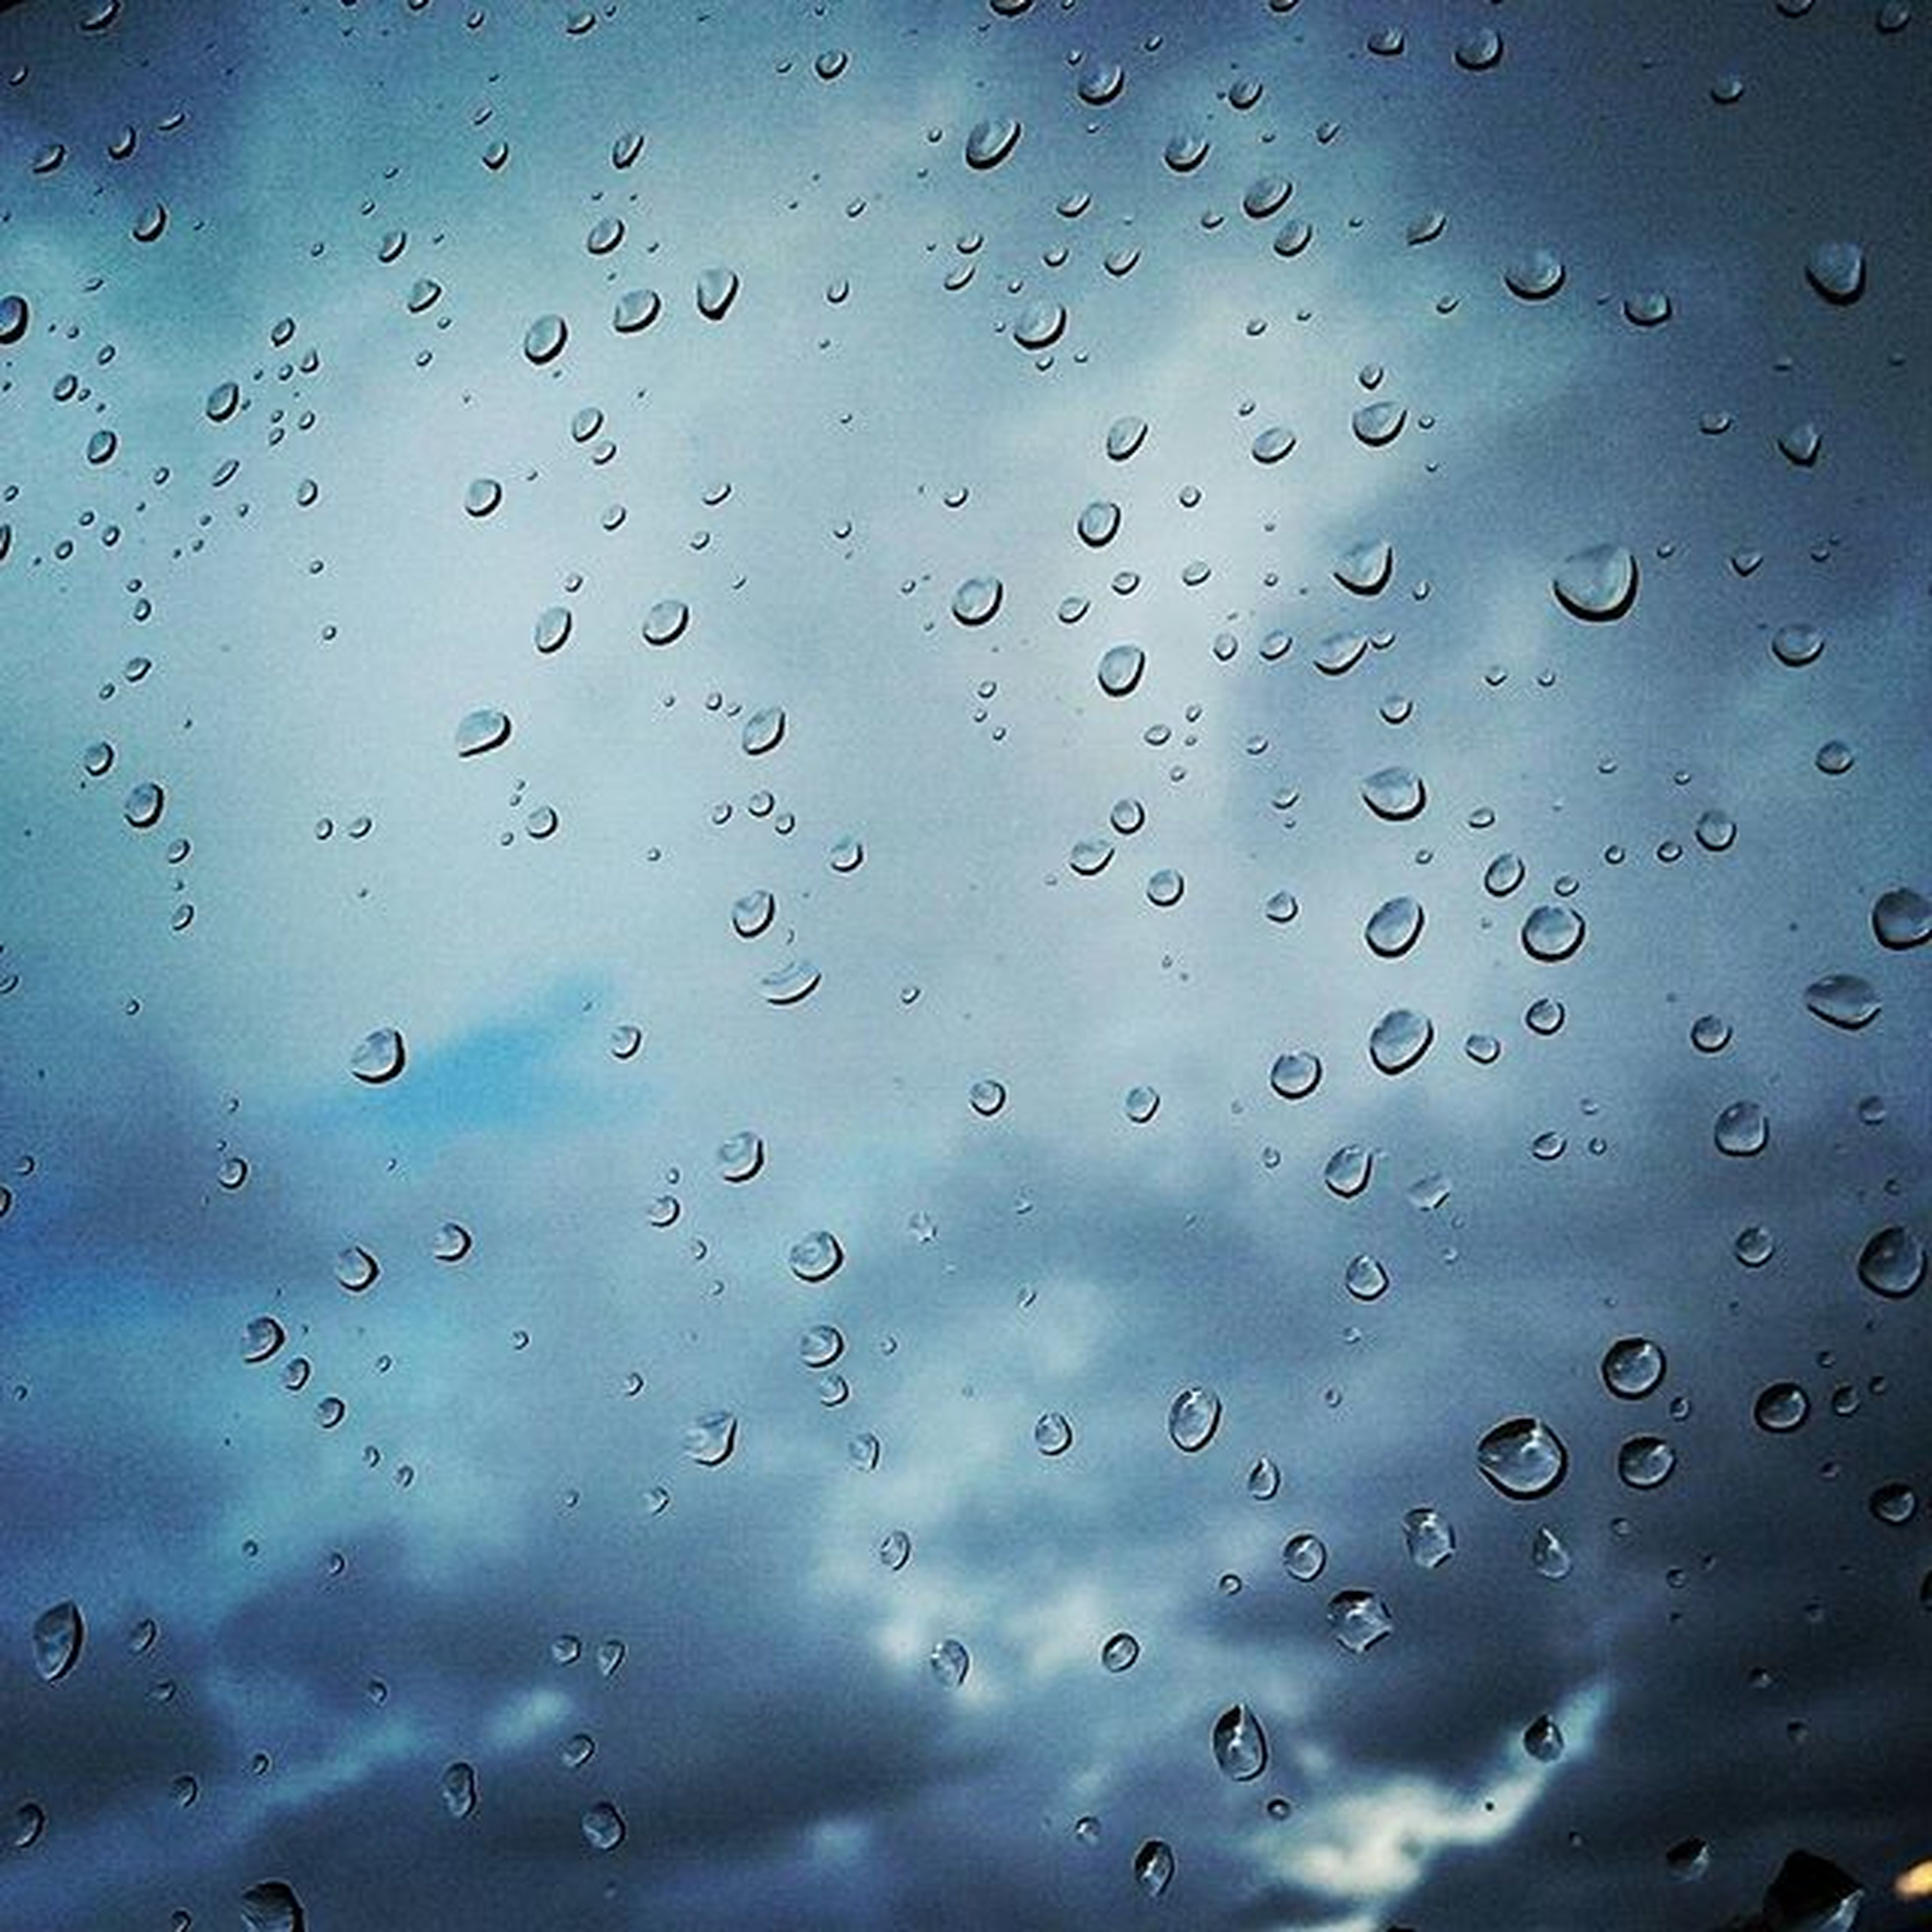 drop, wet, water, window, rain, sky, weather, raindrop, transparent, backgrounds, full frame, indoors, glass - material, focus on foreground, season, cloud - sky, close-up, glass, nature, droplet